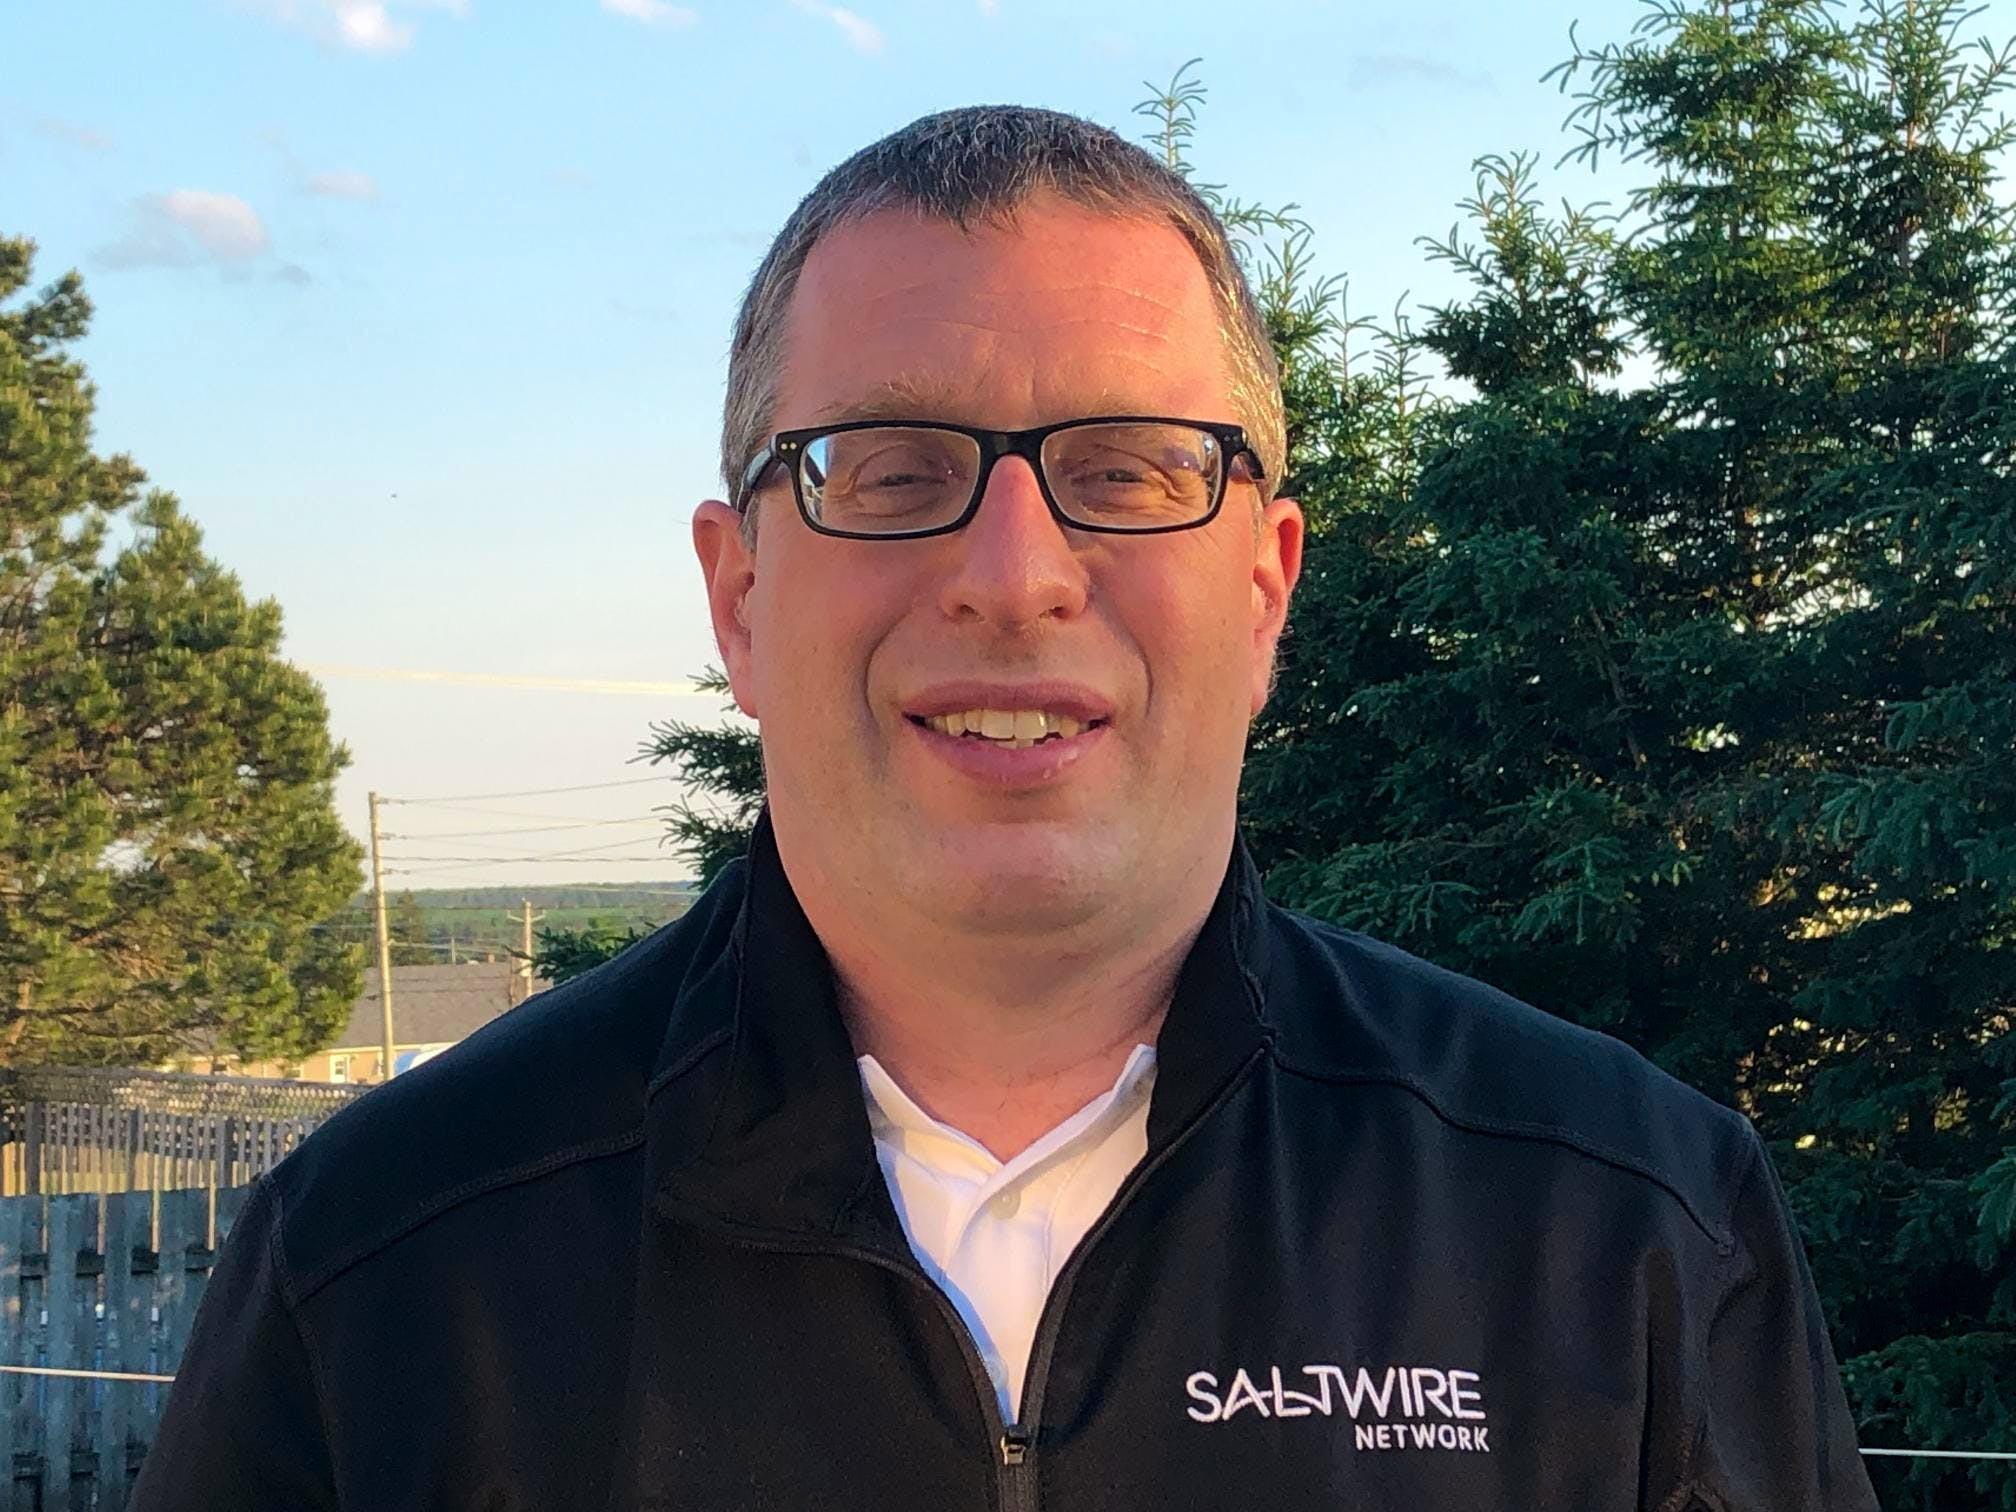 Jason Simmonds is a multimedia journalist covering sports and news for SaltWire Network in P.E.I.